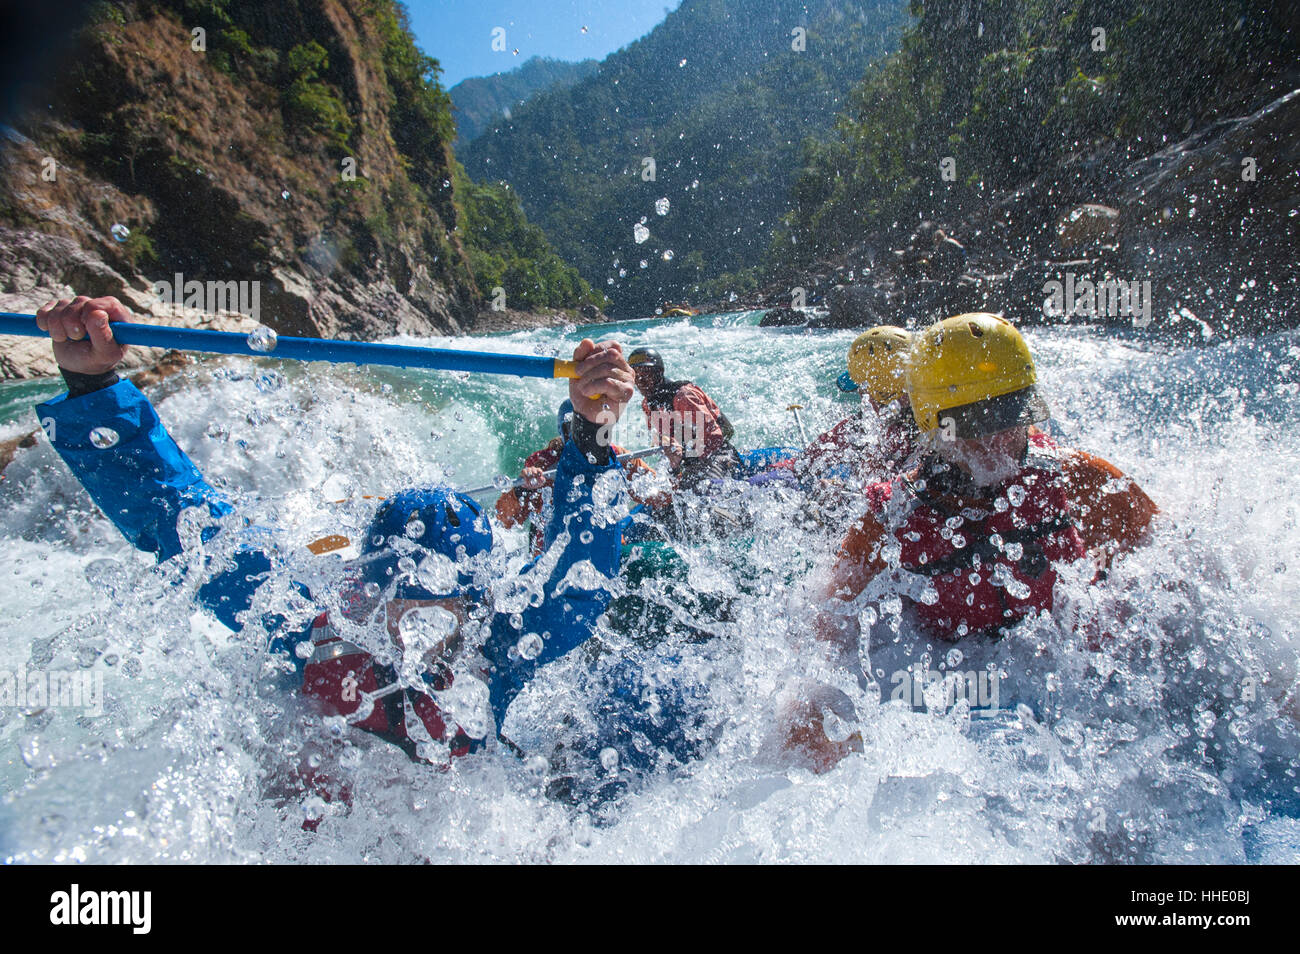 Eine rafting-Expedition auf dem Karnali River, West-Nepal Stockbild